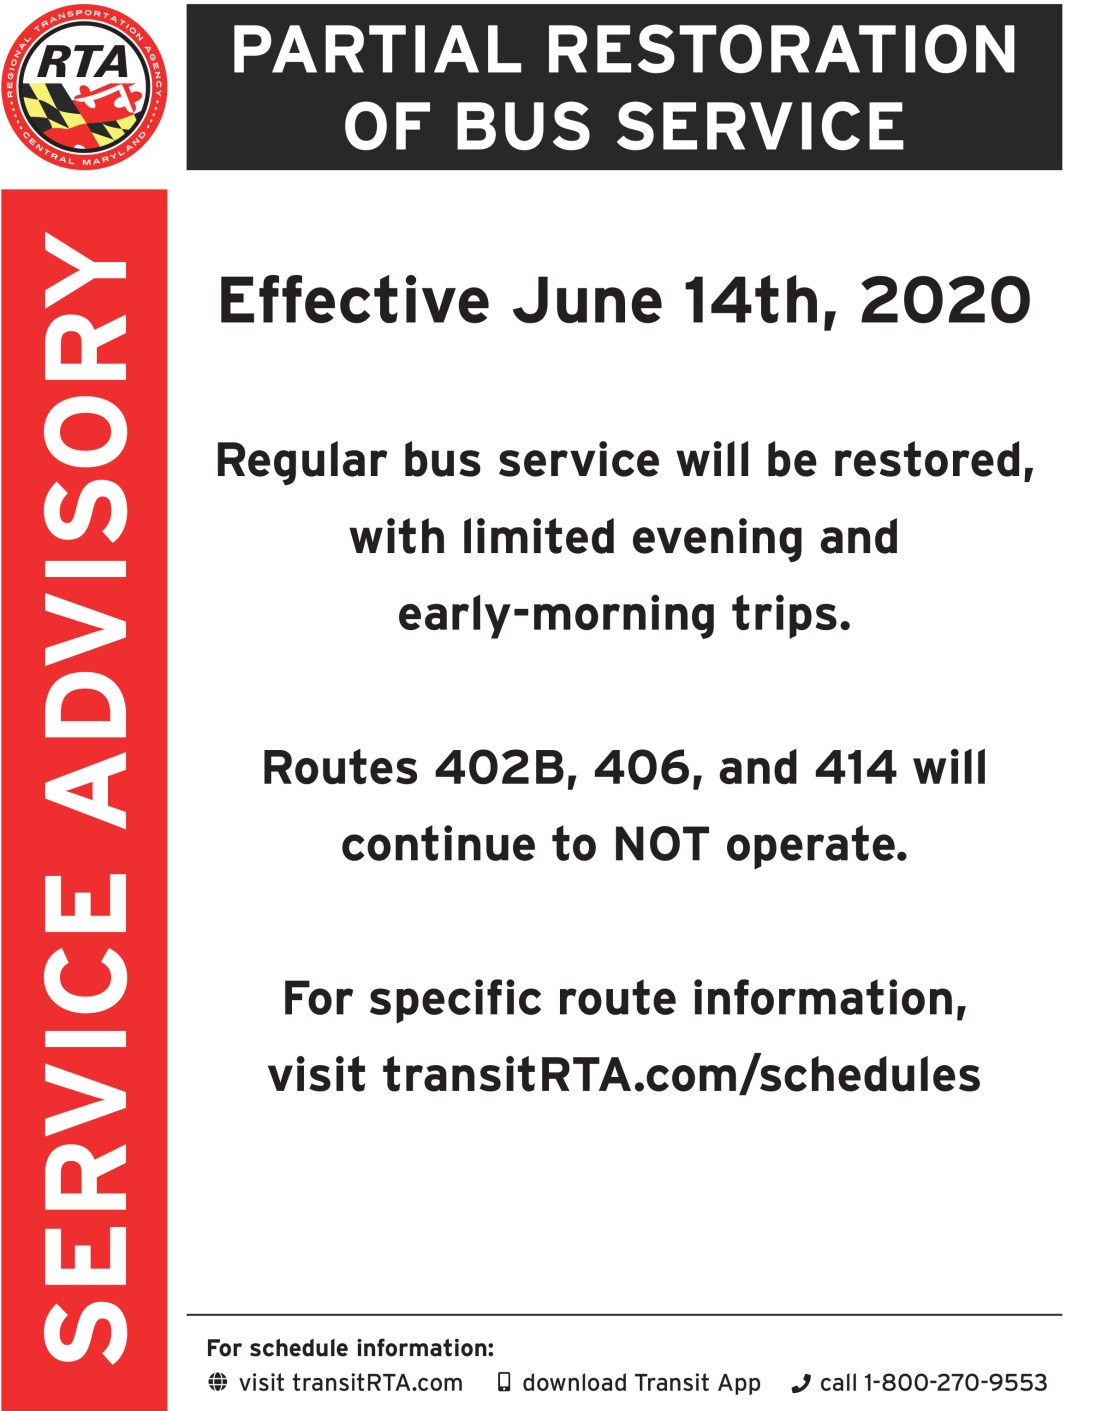 service notice - service restoration june 14 2020.ai